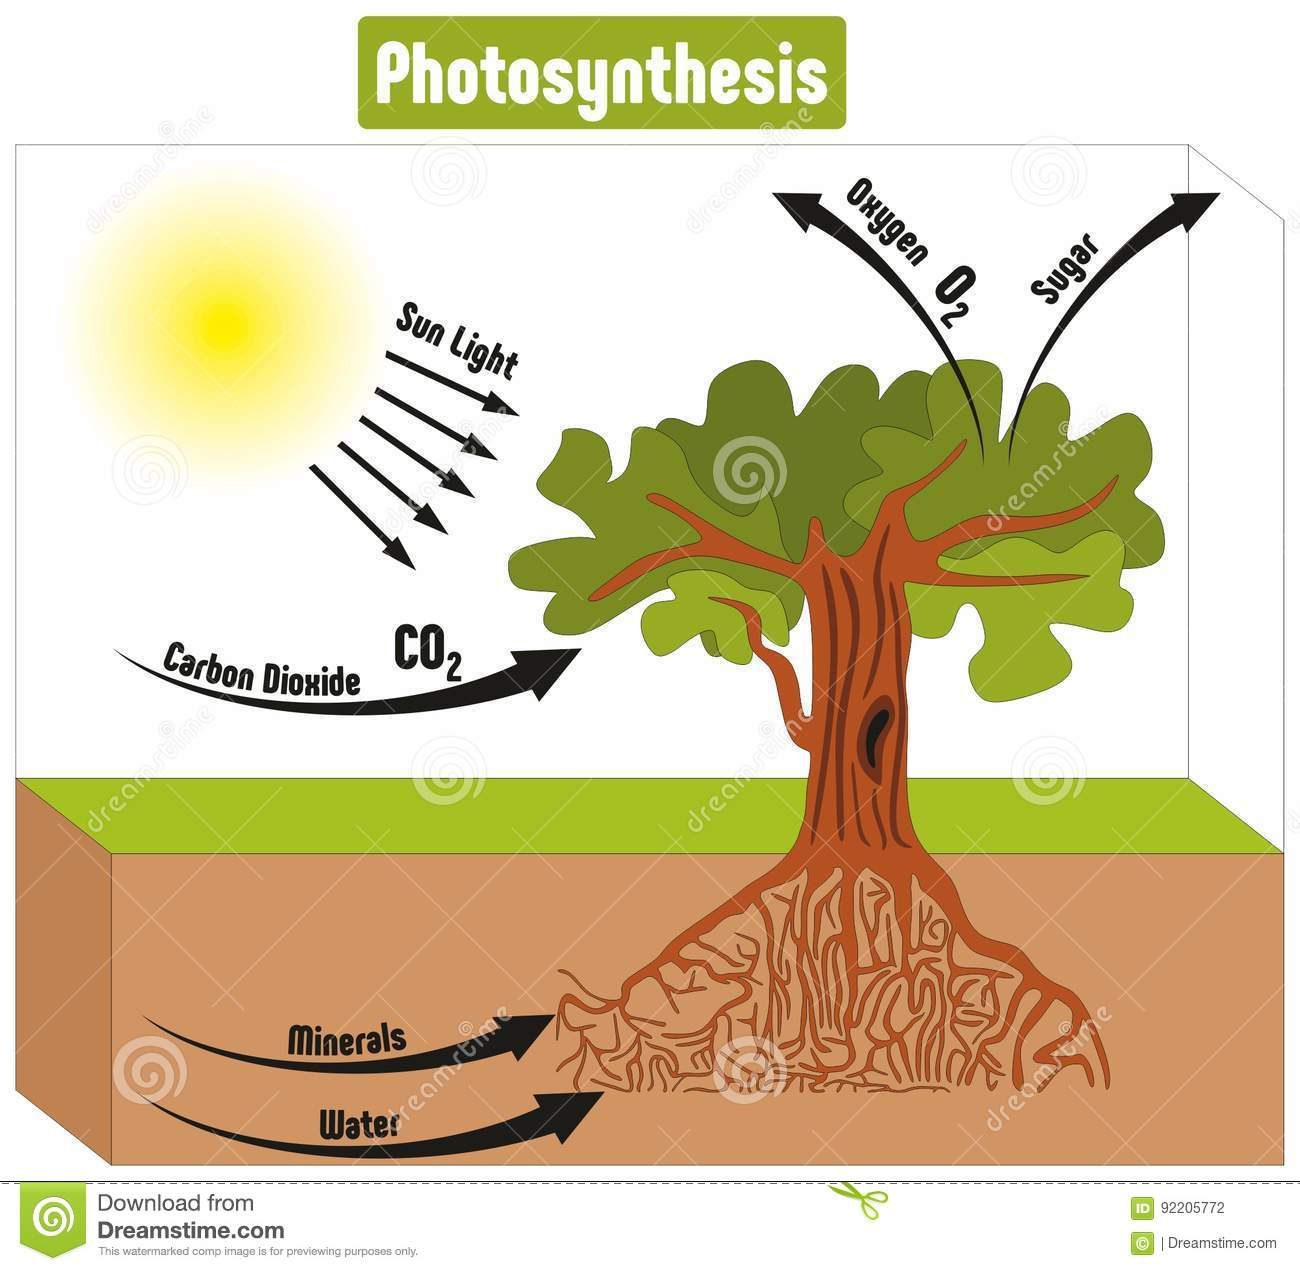 hight resolution of photosynthesis process in plant diagram vector illustration